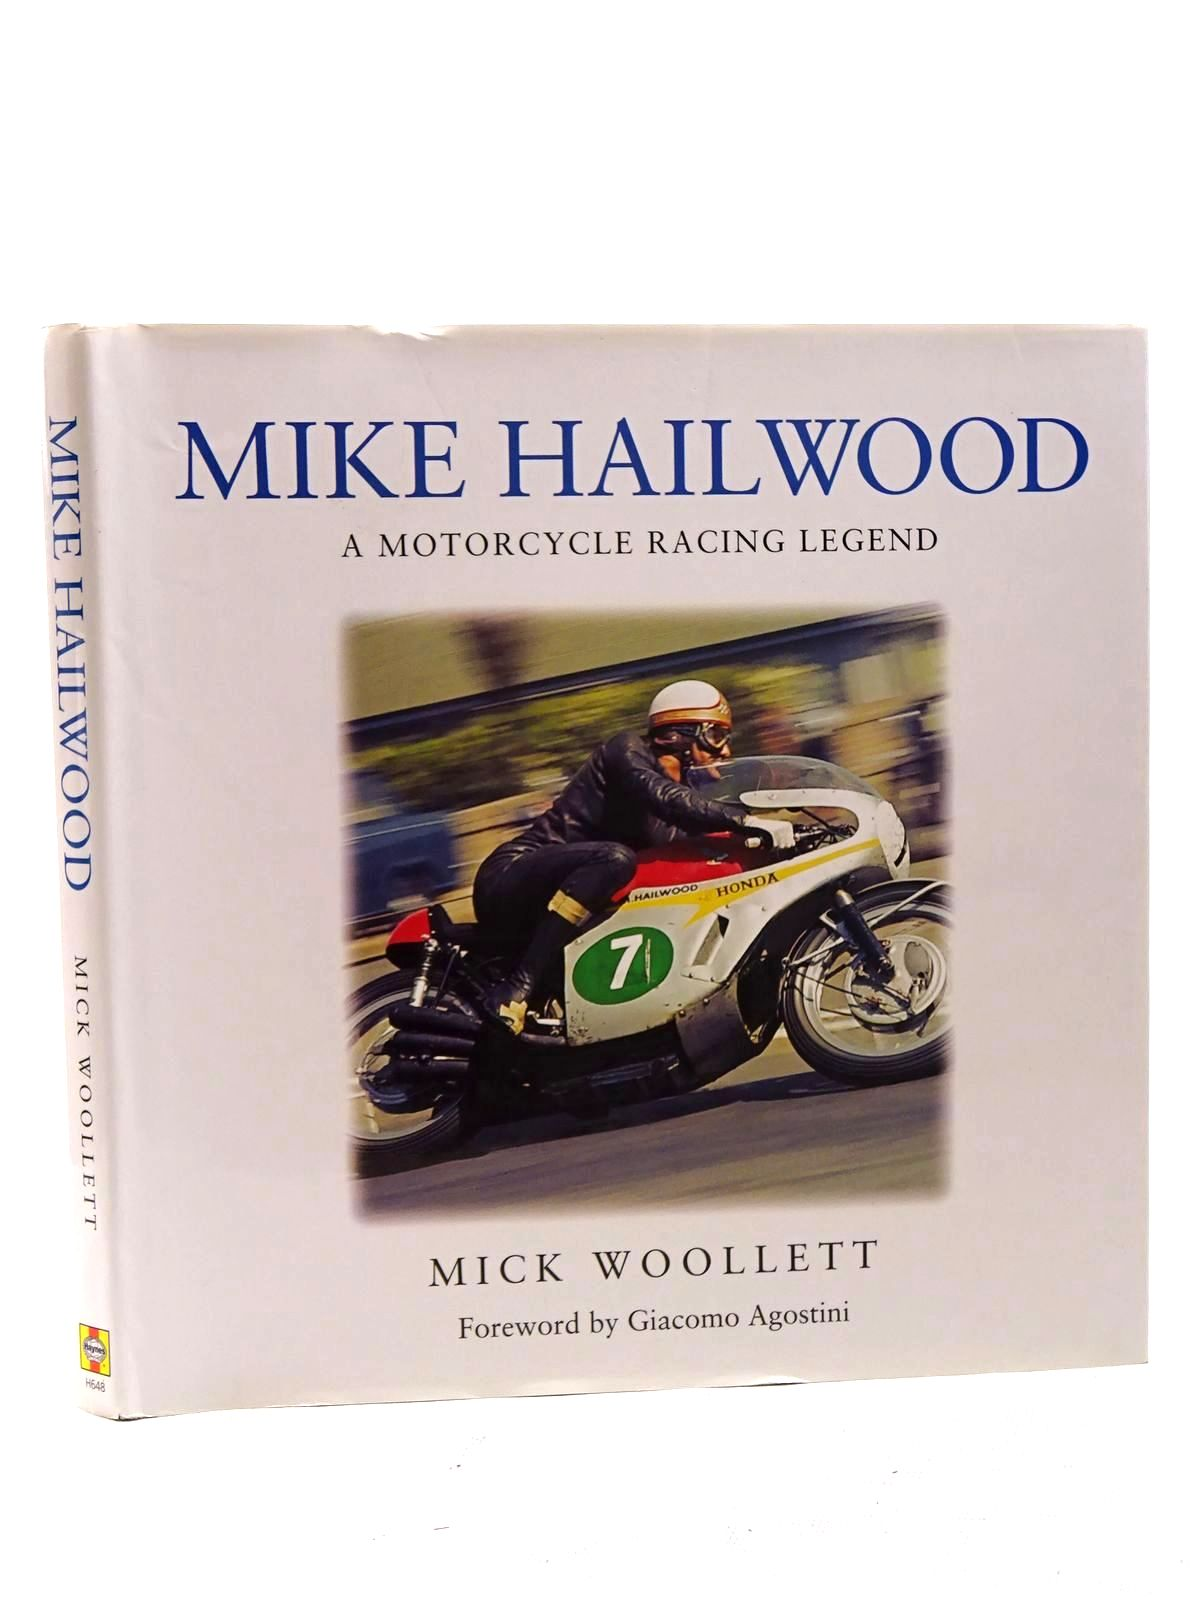 Photo of MIKE HAILWOOD A MOTORCYCLE RACING LEGEND written by Woollett, Mick published by Haynes Publishing Group (STOCK CODE: 1610579)  for sale by Stella & Rose's Books